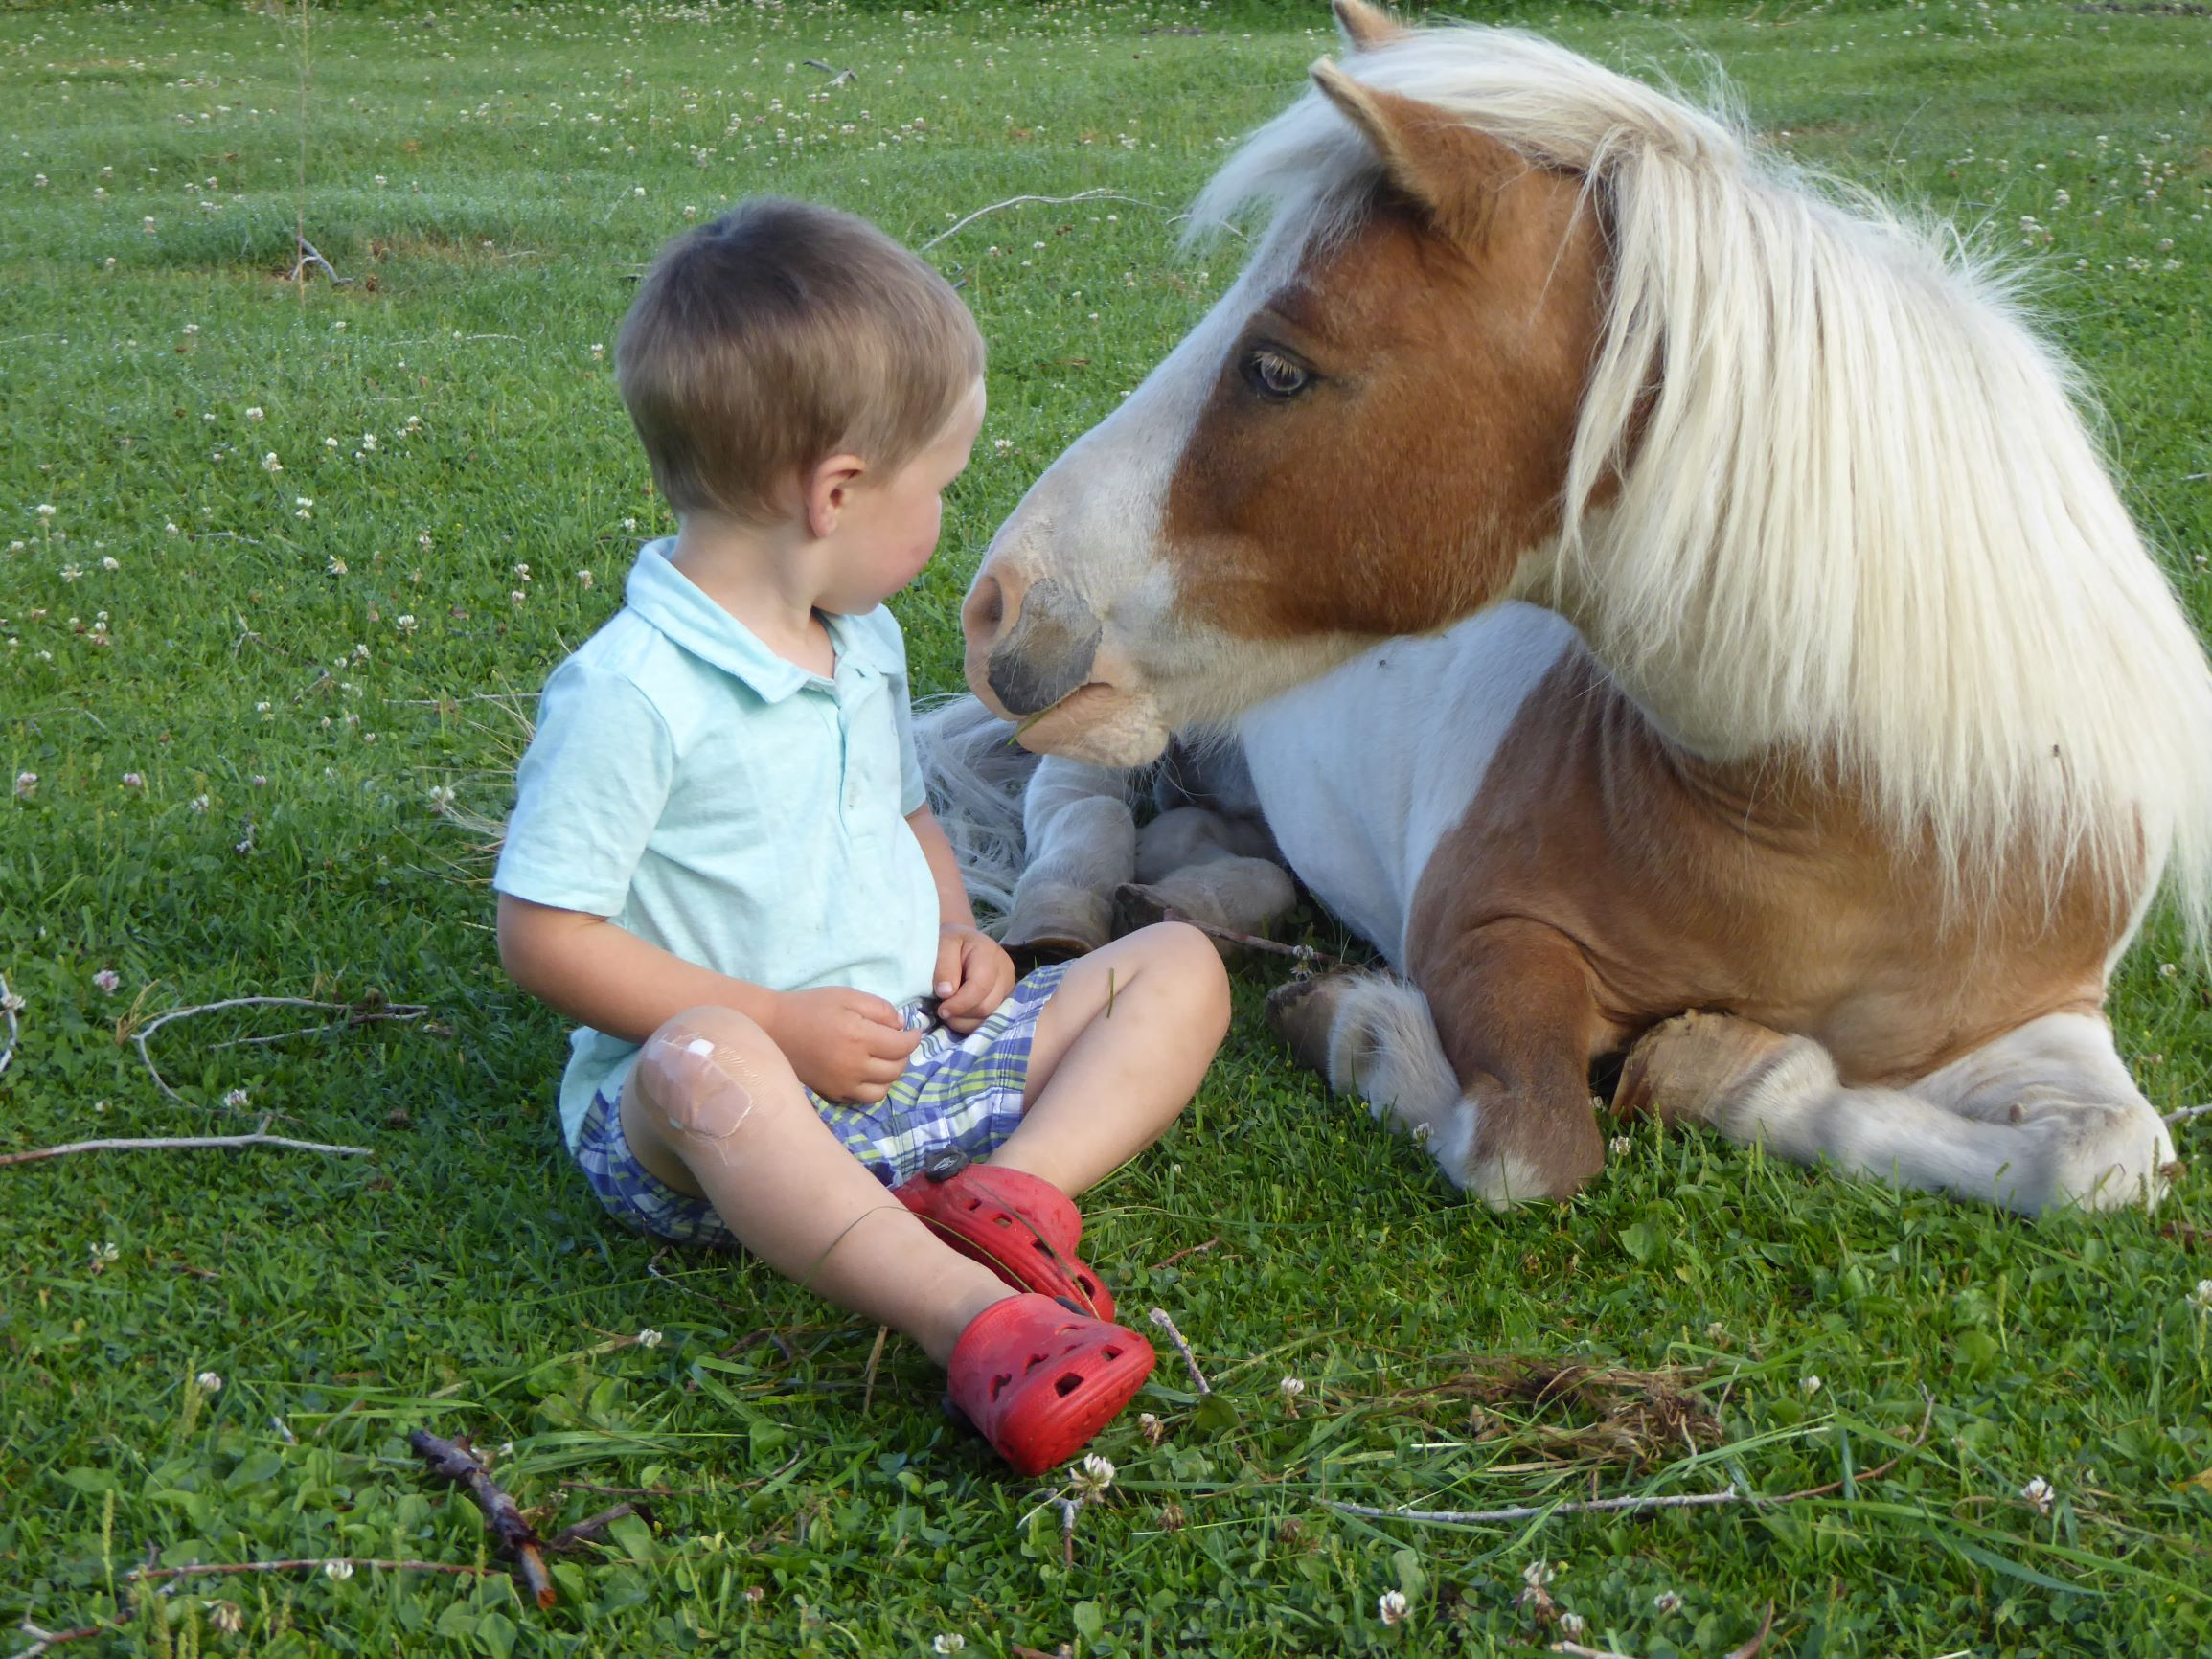 Little Titus and the pony